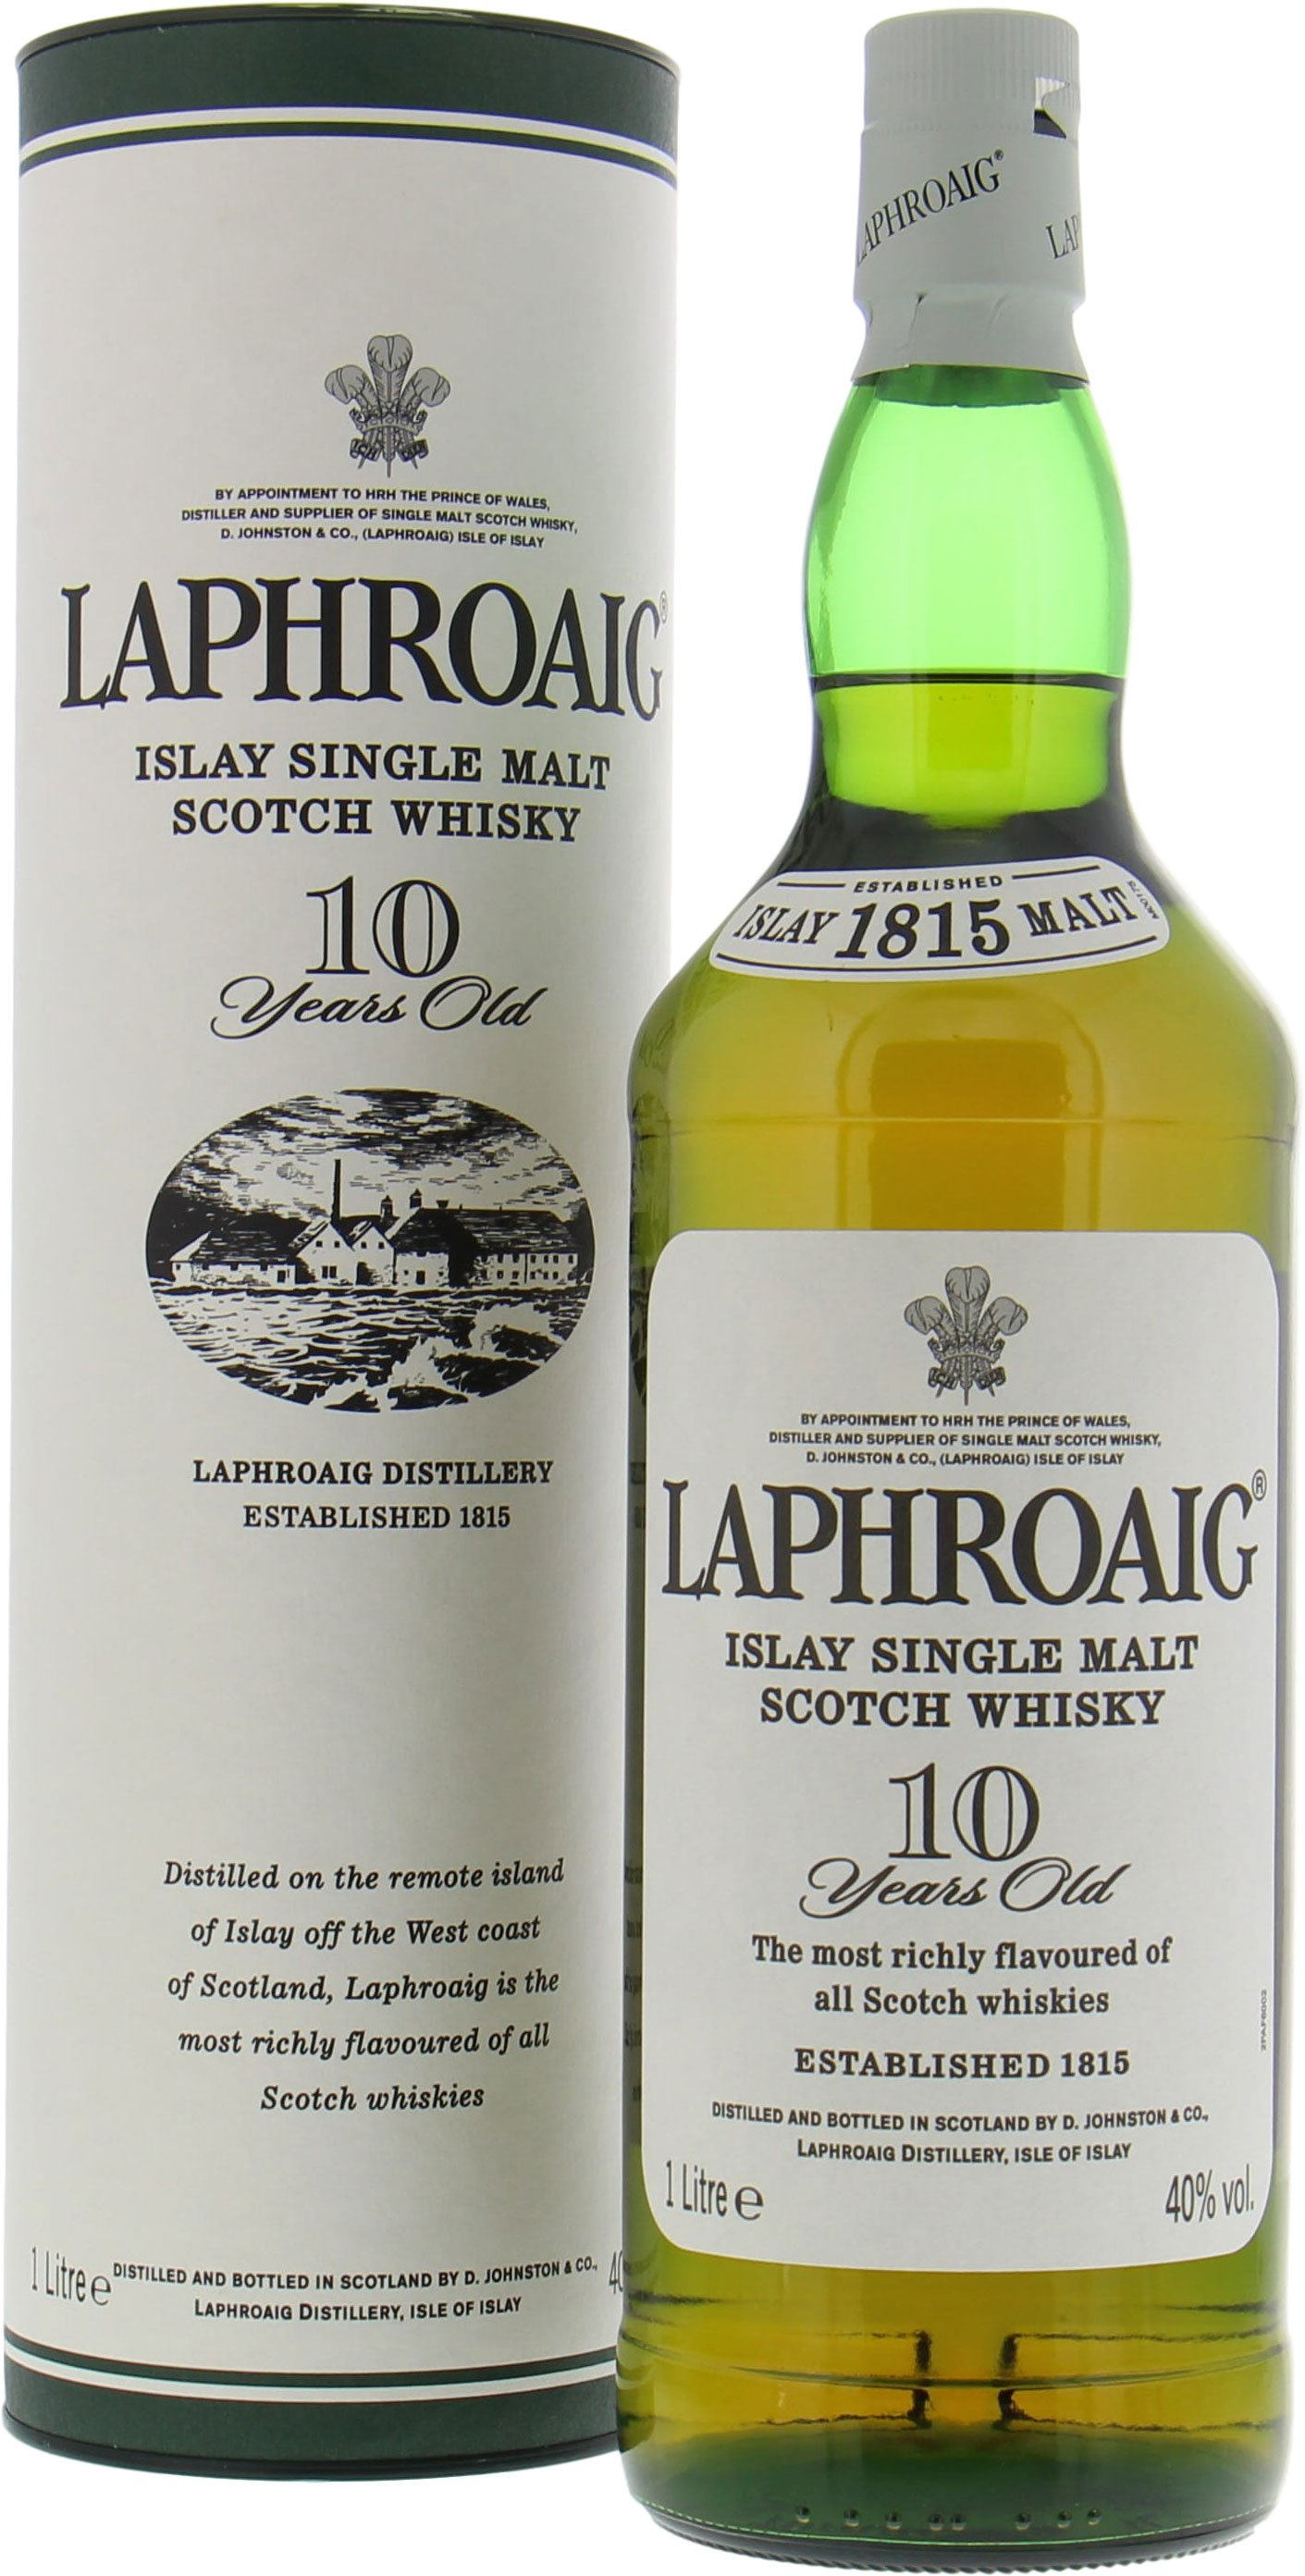 Laphroaig - 10 Years Old Feathered Crest Badge 43% NV